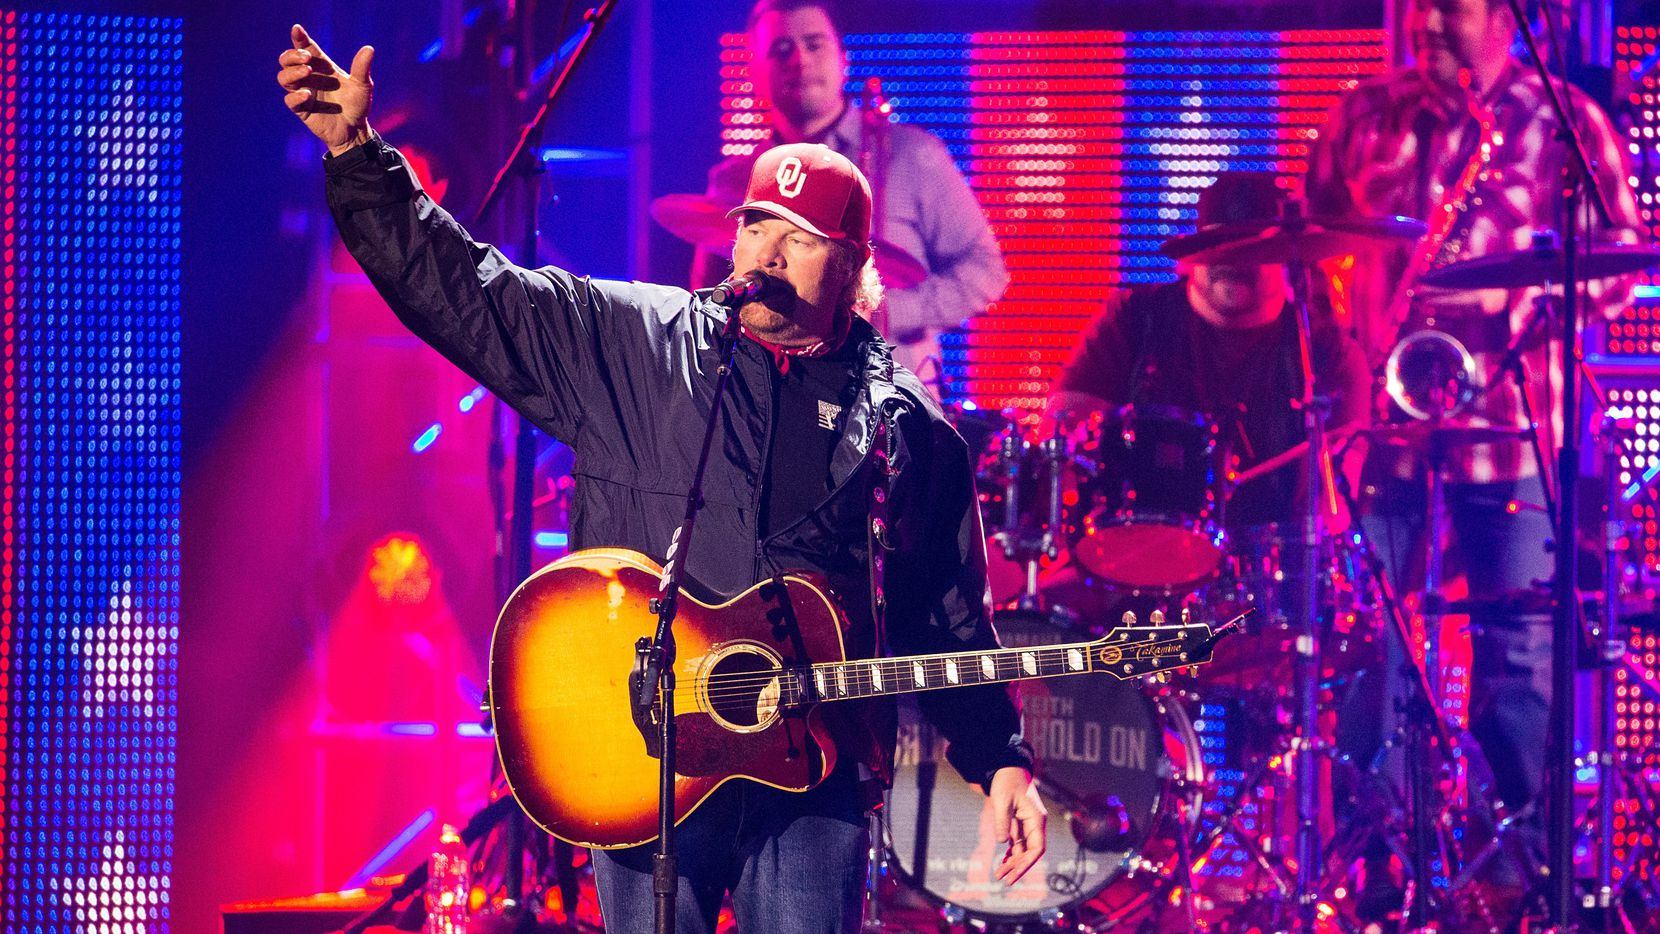 Toby Keith will headline the Oct. 15 Cattle Baron's Ball at Gilley's in Dallas